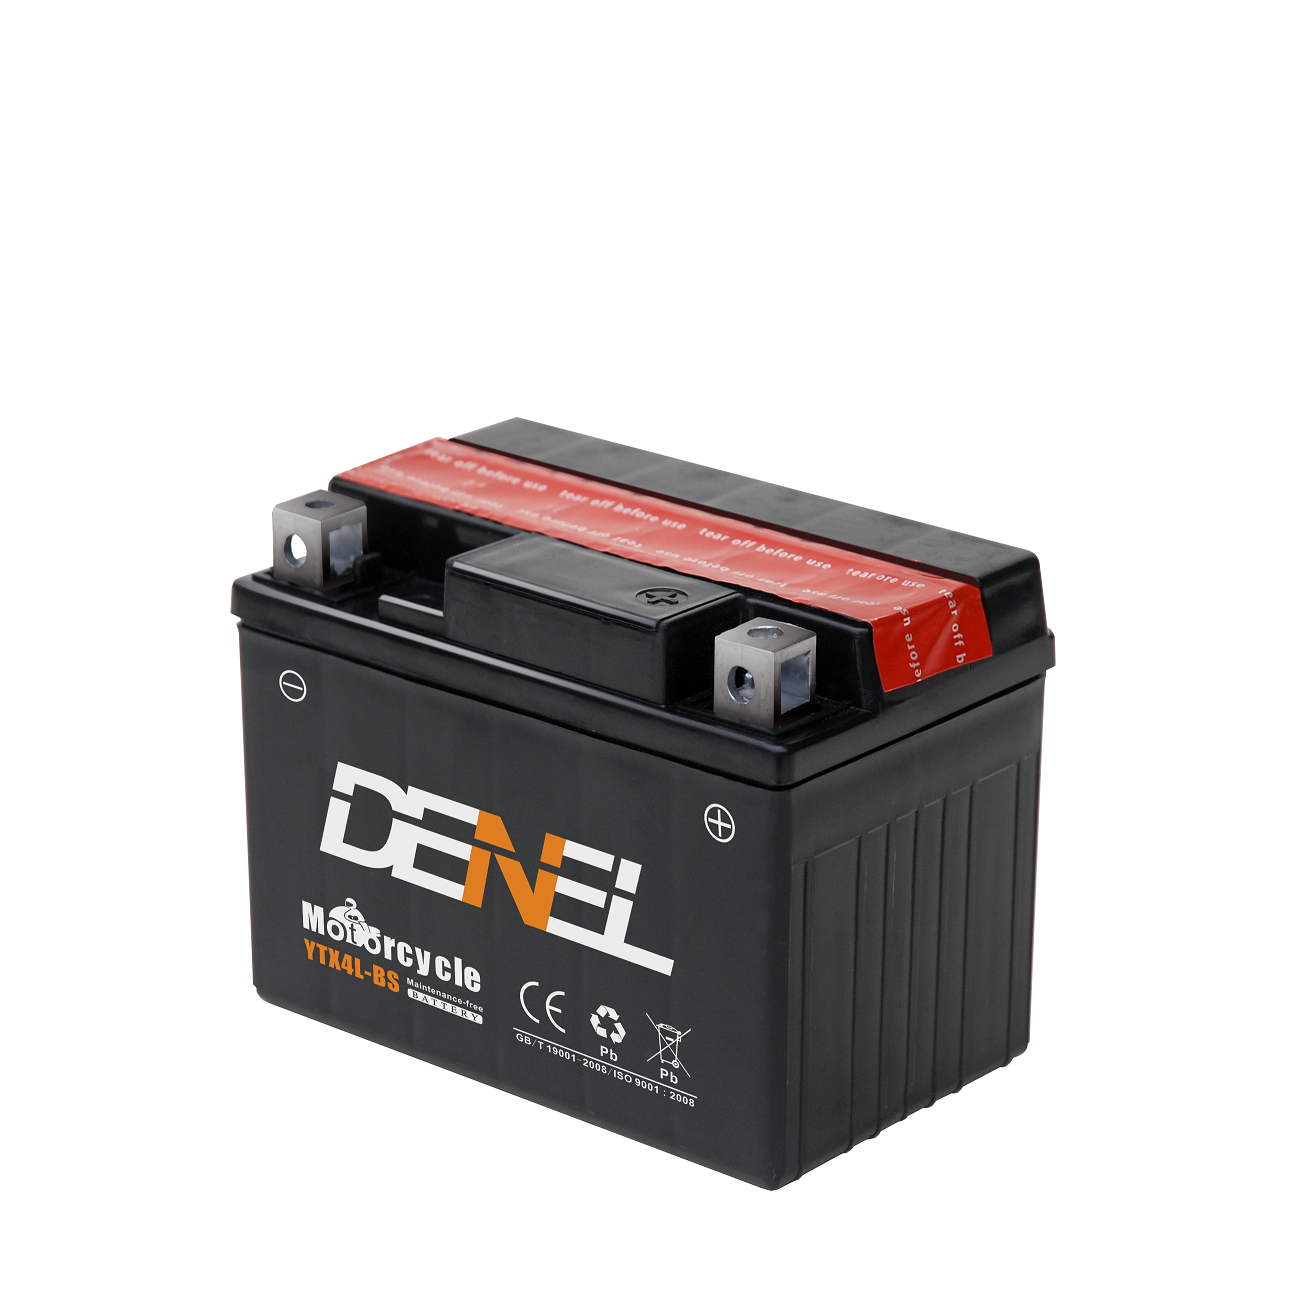 12v3ah motorcycle battery lead acid battery VRLA,SLA,two wheeler MOTORCYCLE battery